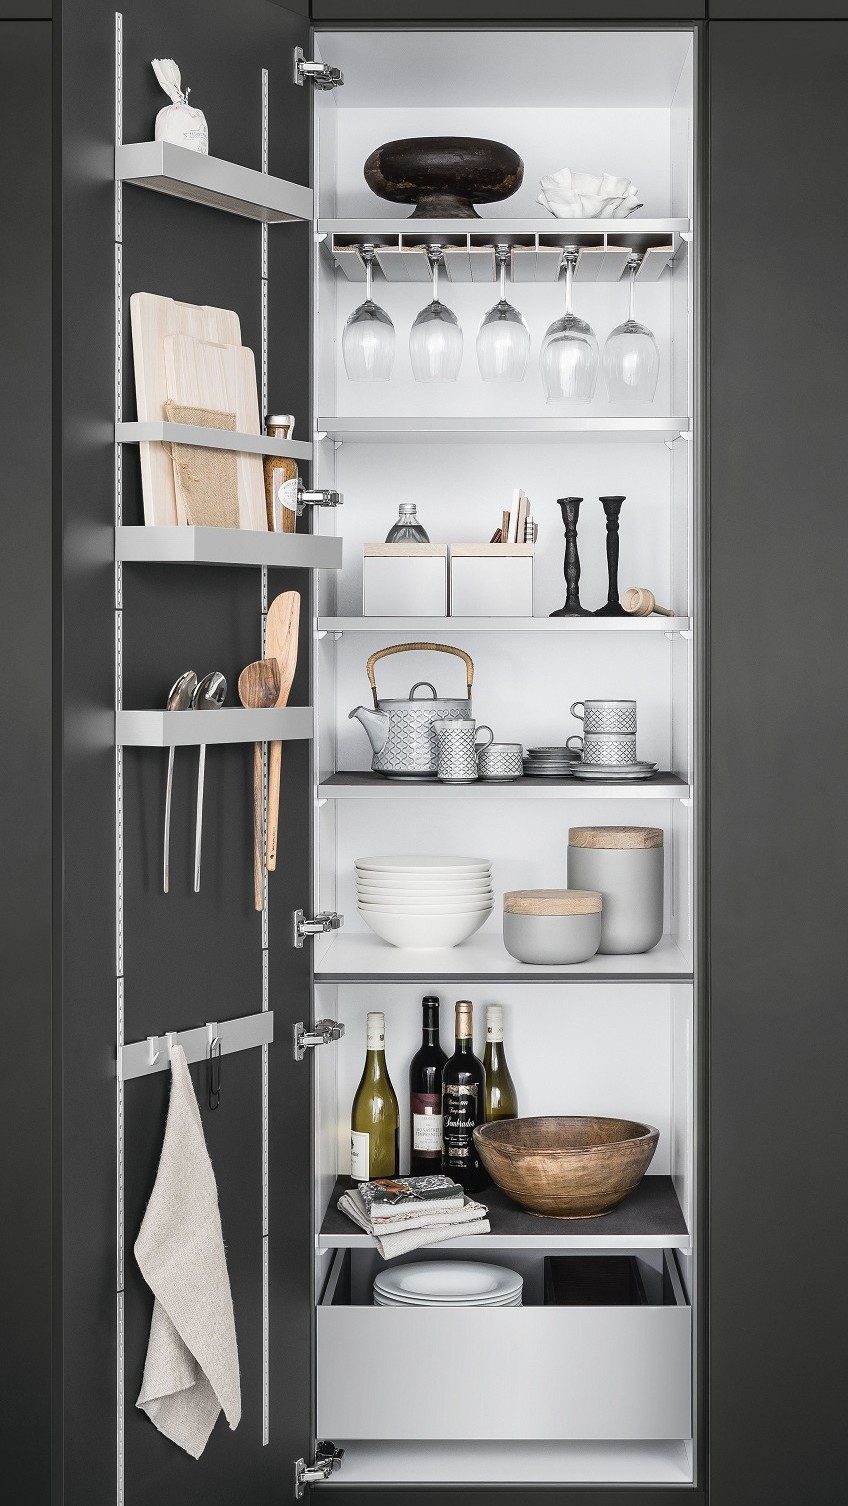 SieMatic MultiMatic interior organization system for cabinets offers up to 30% more storage space in the kitchen